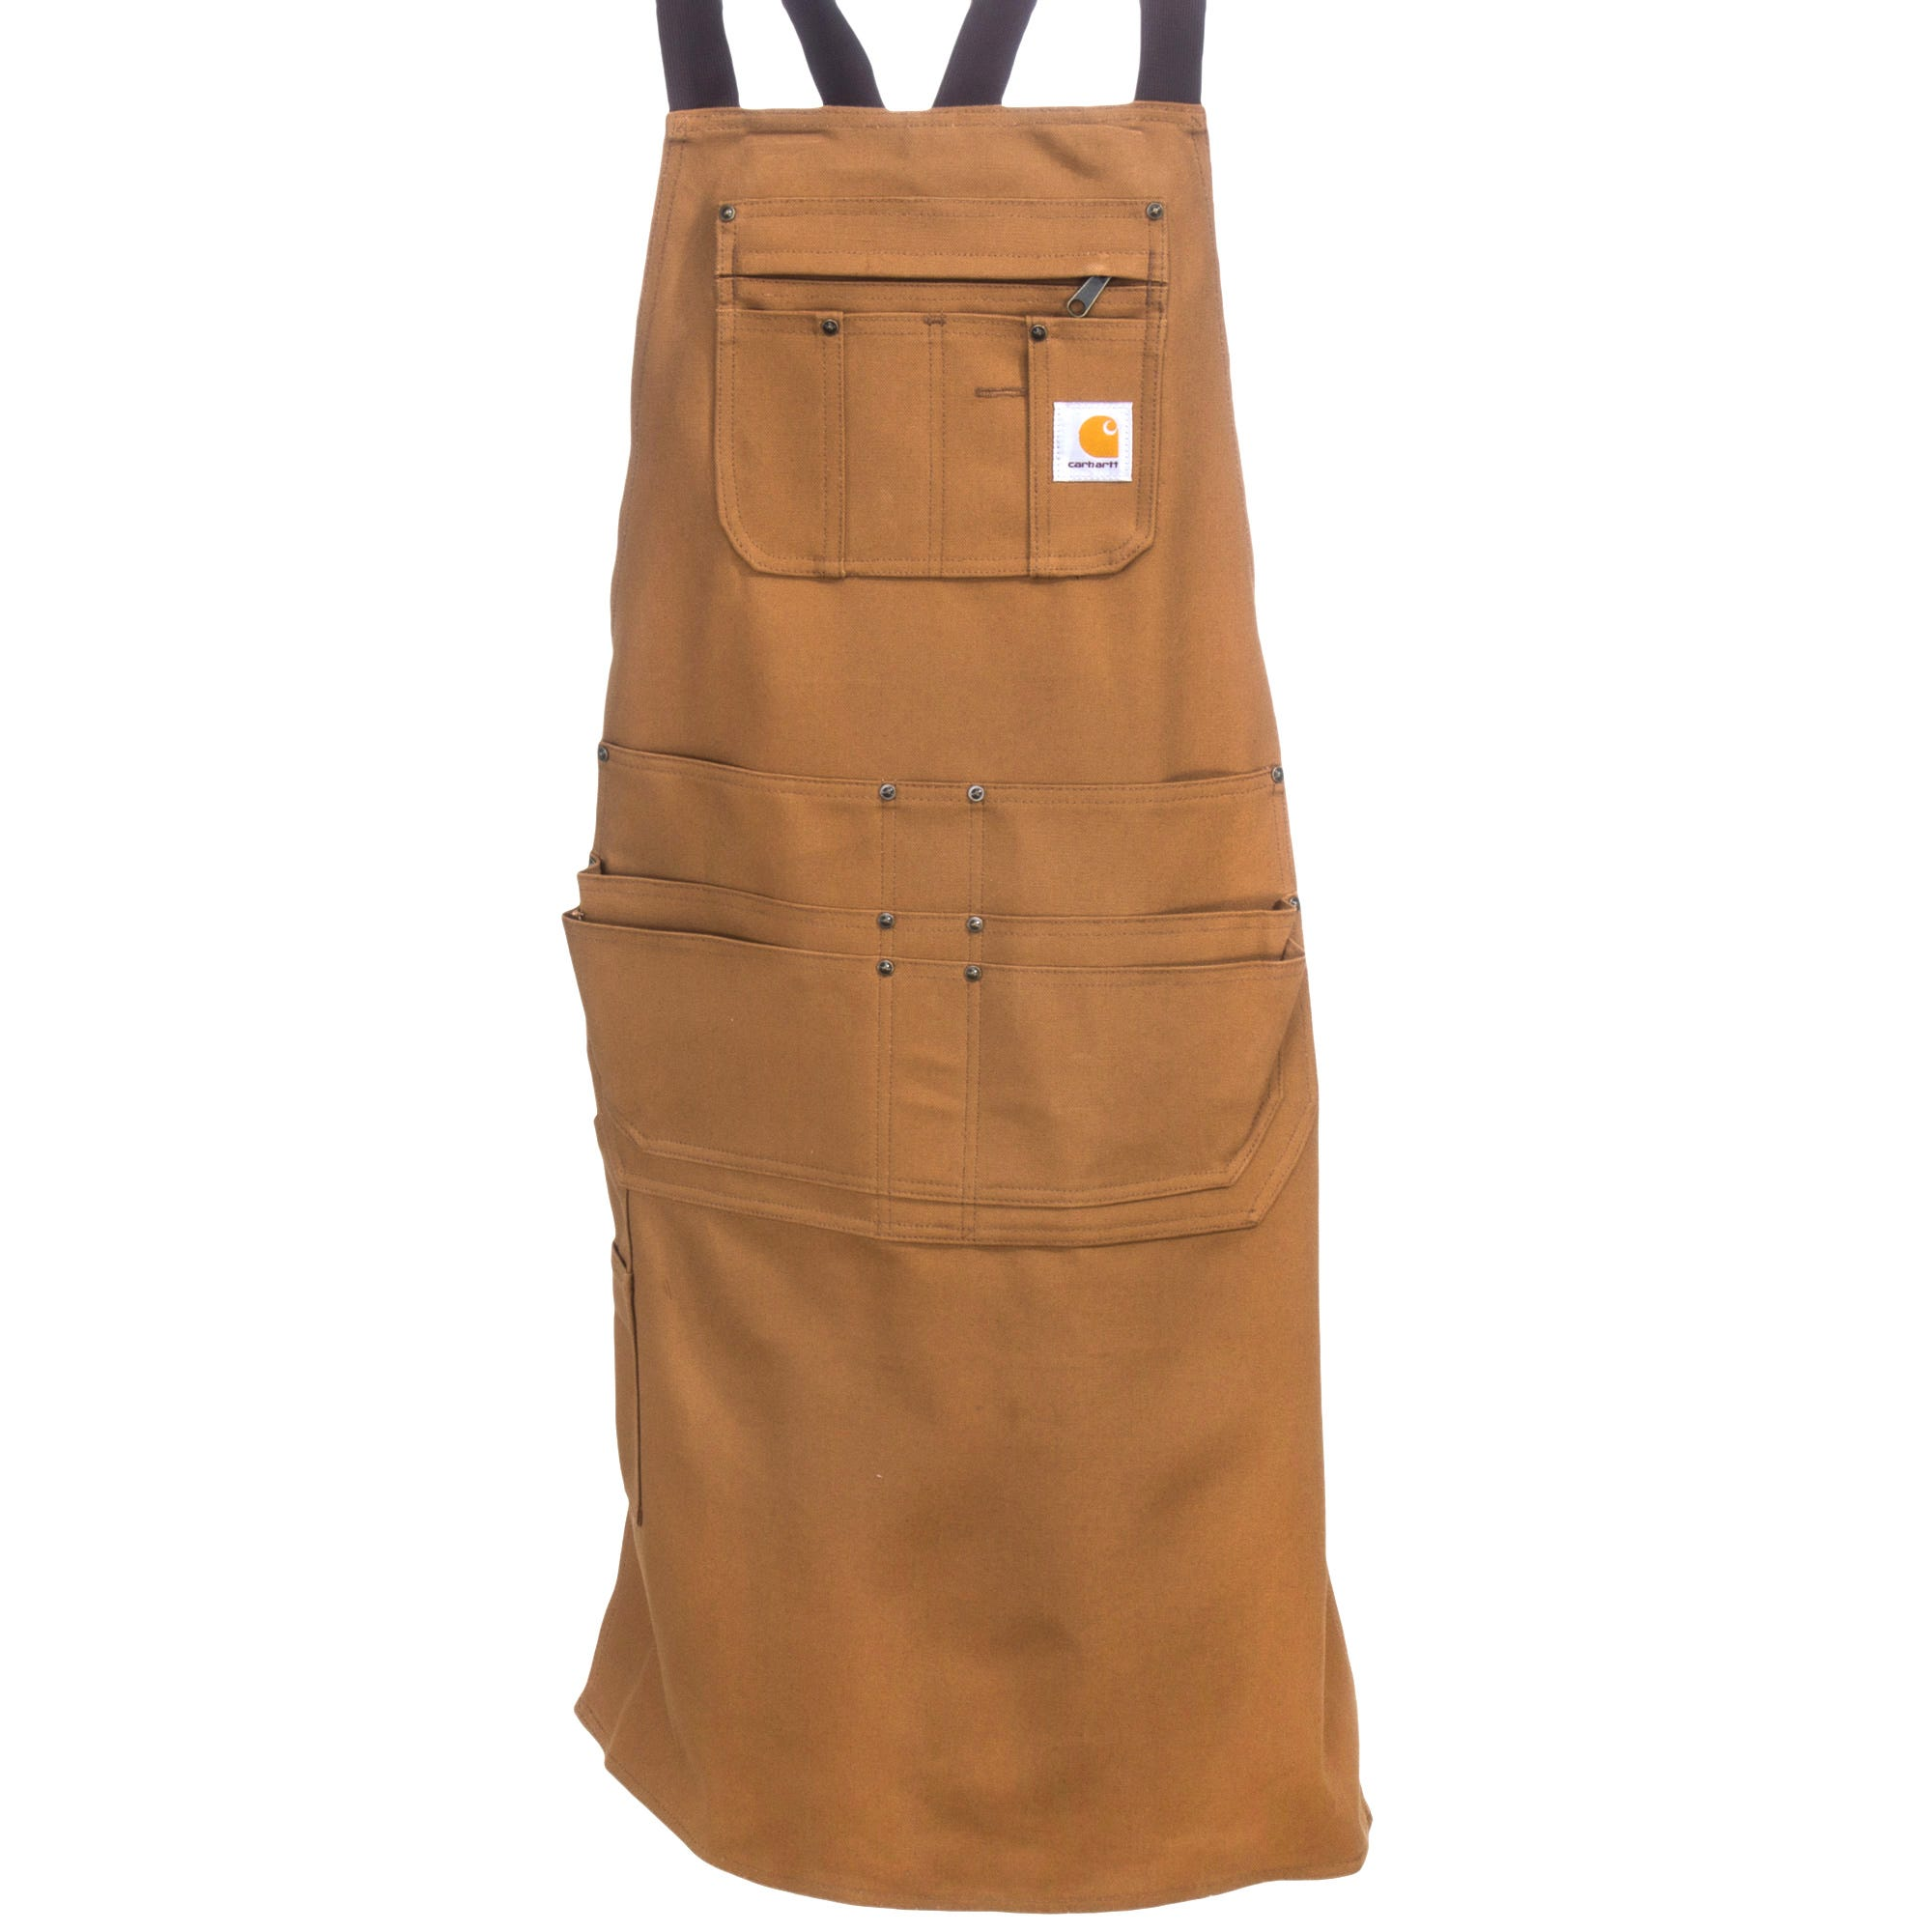 7d32911083d Carhartt Aprons: Men's 102483 211 Carhartt Brown Cotton Duck Apron ...